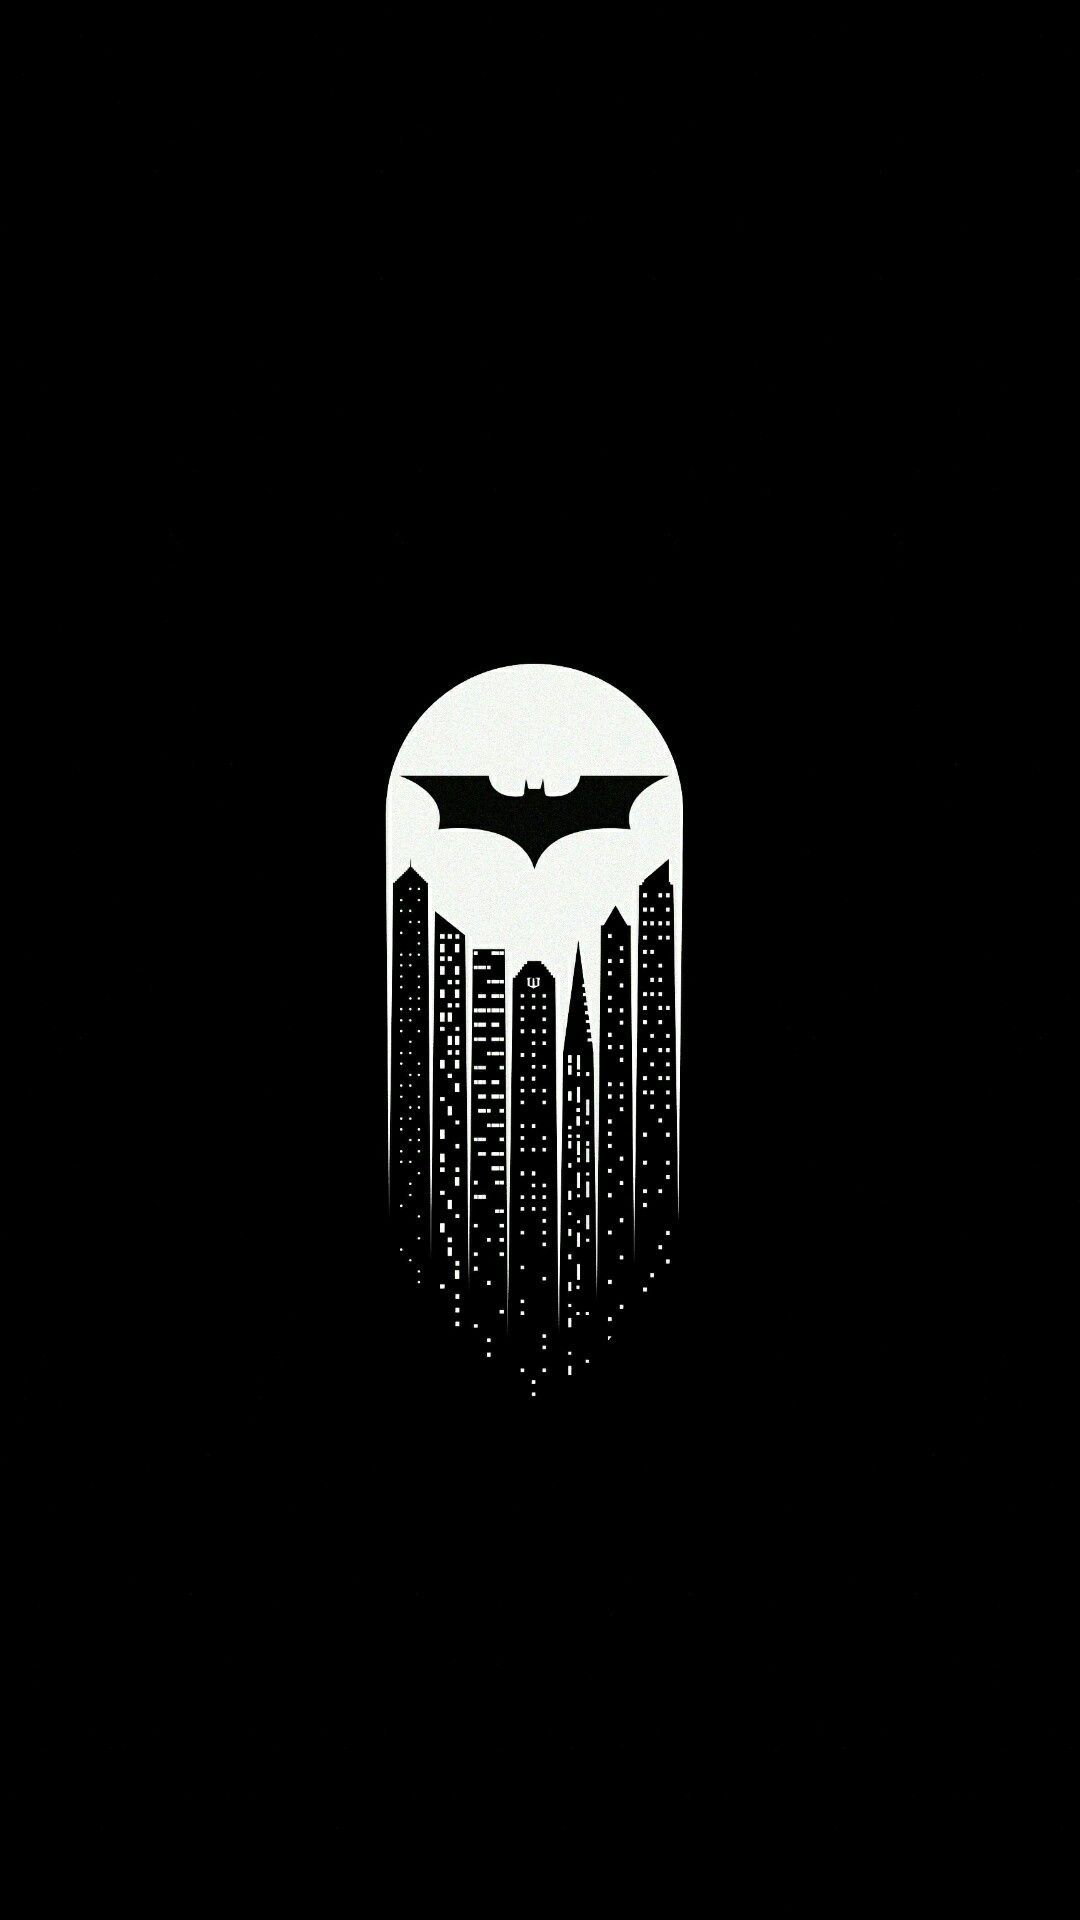 Gotham City iPhone Wallpaper | комиксы | Batman wallpaper ... Бэтмен Против Супермена Обои